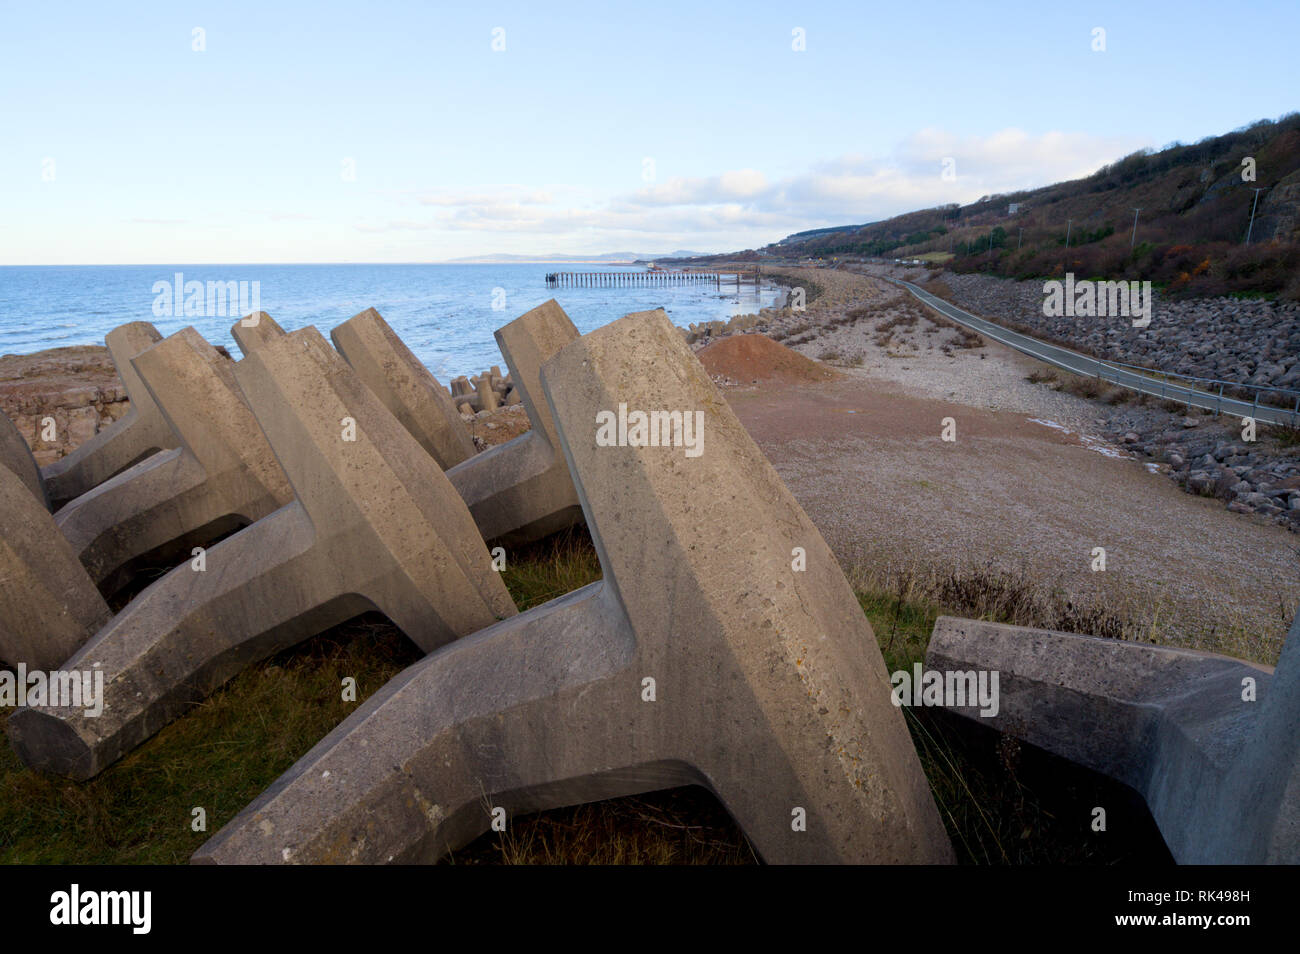 Dolosse at the breakwater in Old Colwyn, Colwyn Bay, North Wales, guarding the A55 North Wales Expressway from the harsh seas. - Stock Image